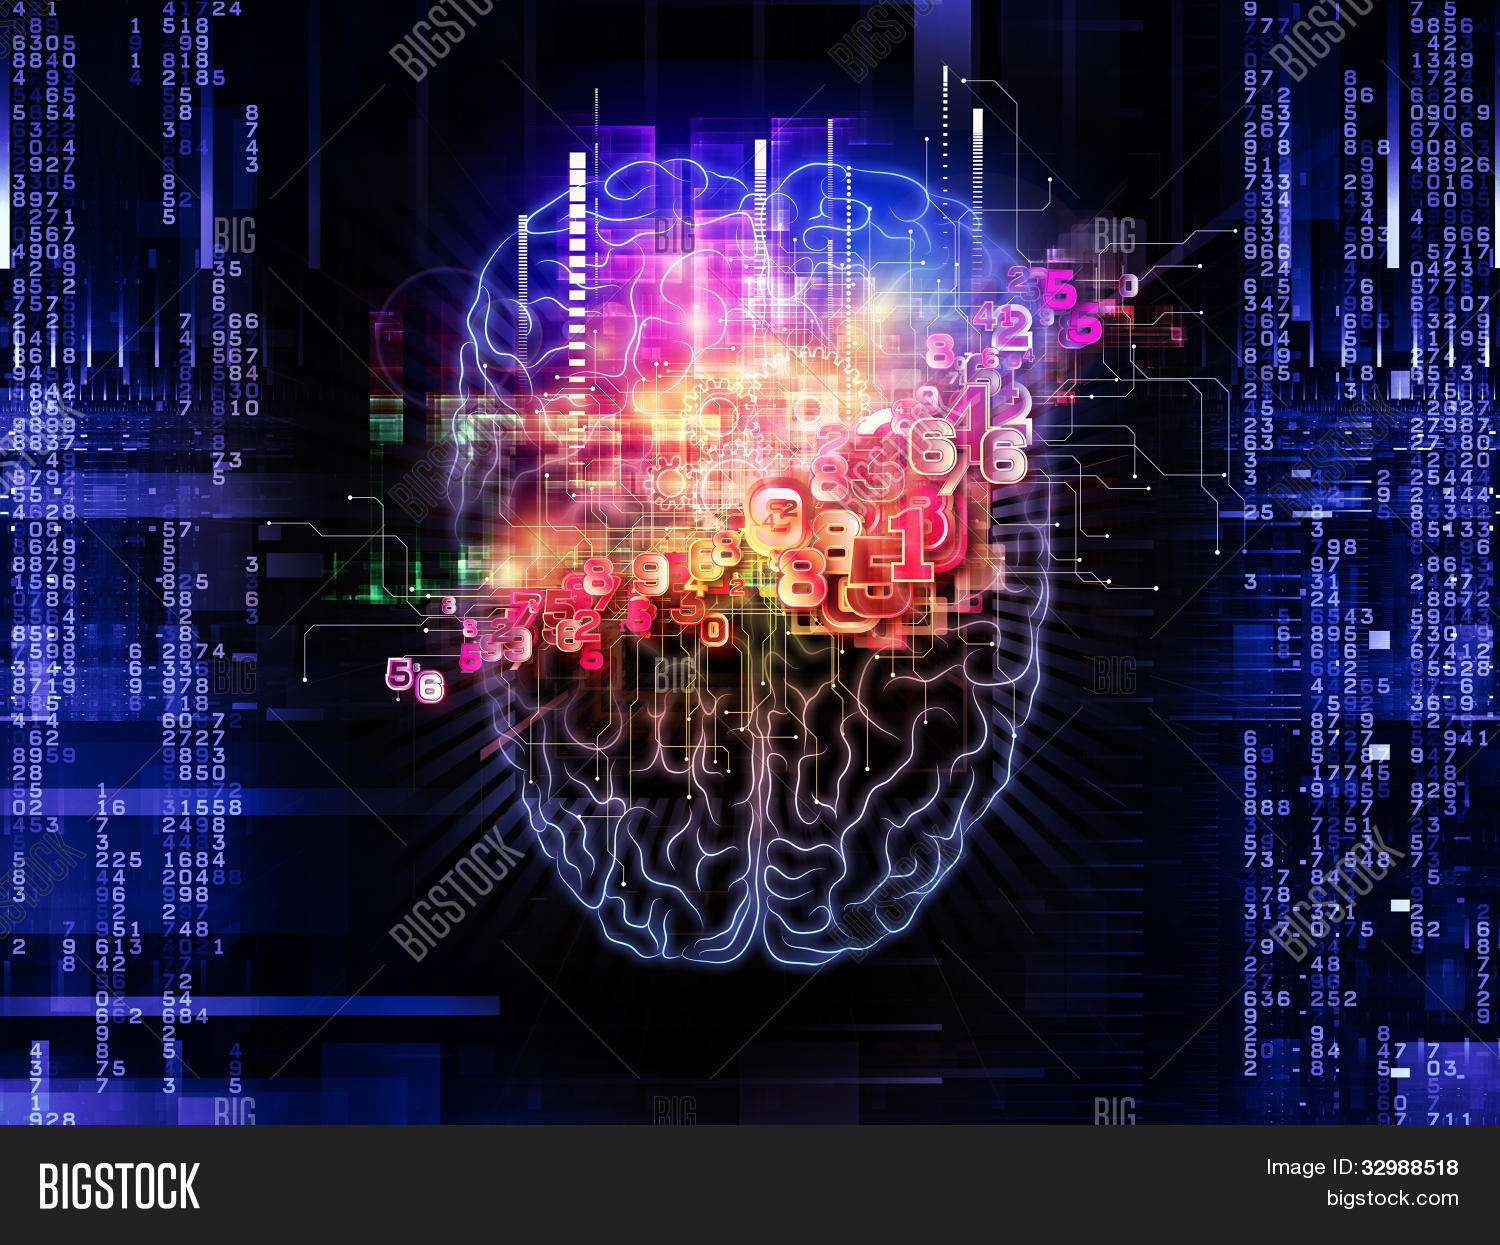 abstract,arithmetic,artificial,backdrop,background,black,blue,brain,bright,calculation,circuit,code,color,colorful,composition,computation,concentric,concept,consciousness,design,digit,electric,golden,graphic,human,idea,intelligence,light,logic,mental,metaphor,mind,number,orange,pattern,shine,signal,symbol,technology,thinking,vibrant,visual,vivid,wallpaper,wire,yellow